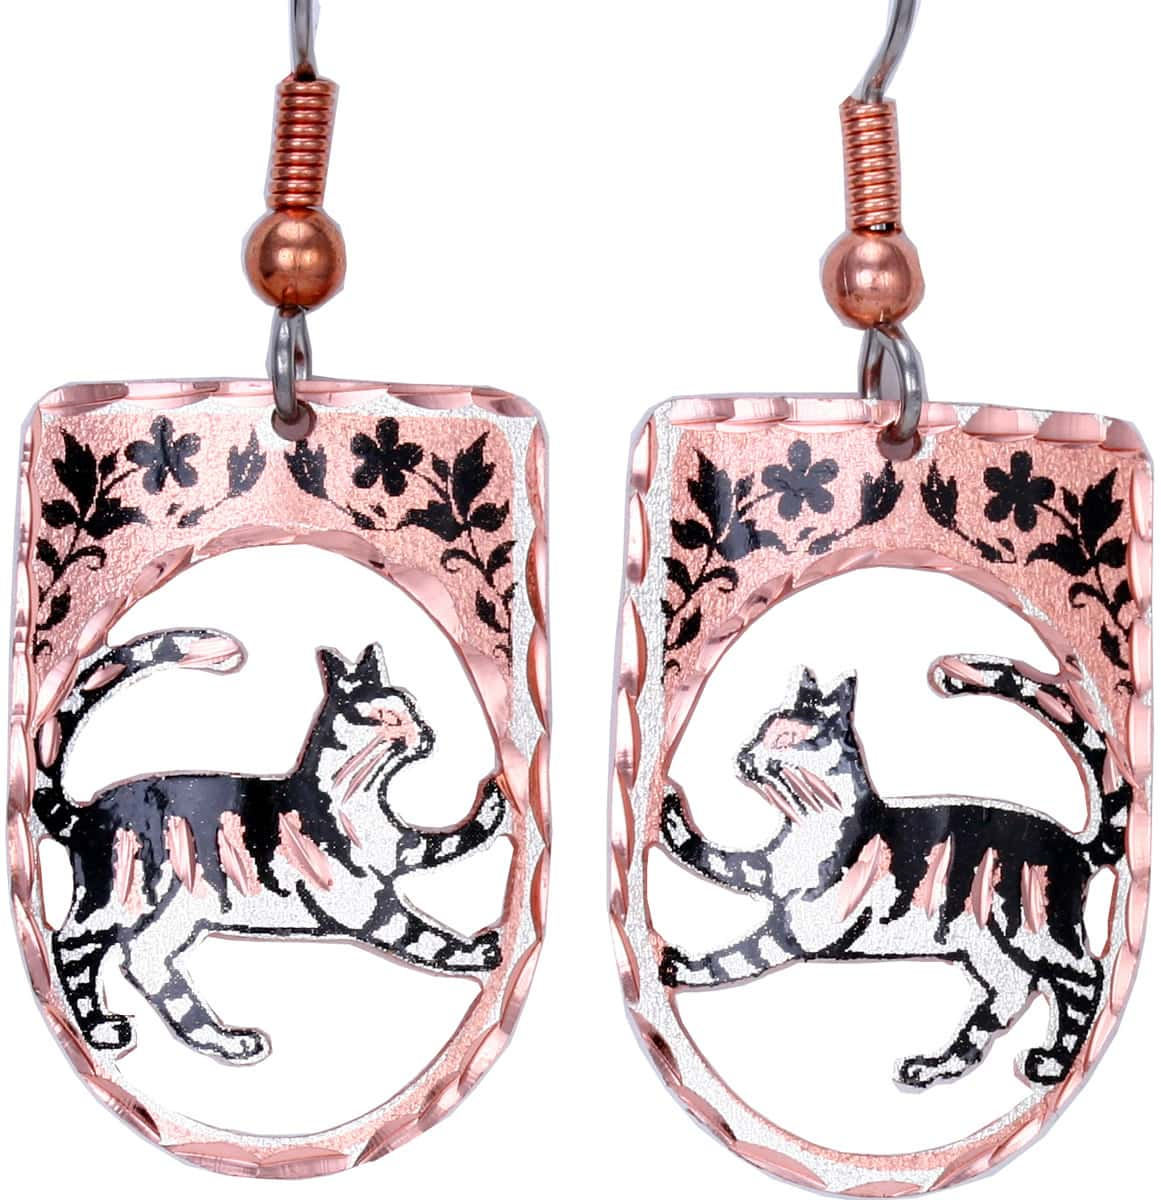 Handmade earrings wholesale, Cut out copper cat earrings with diamond cutting to sparkle